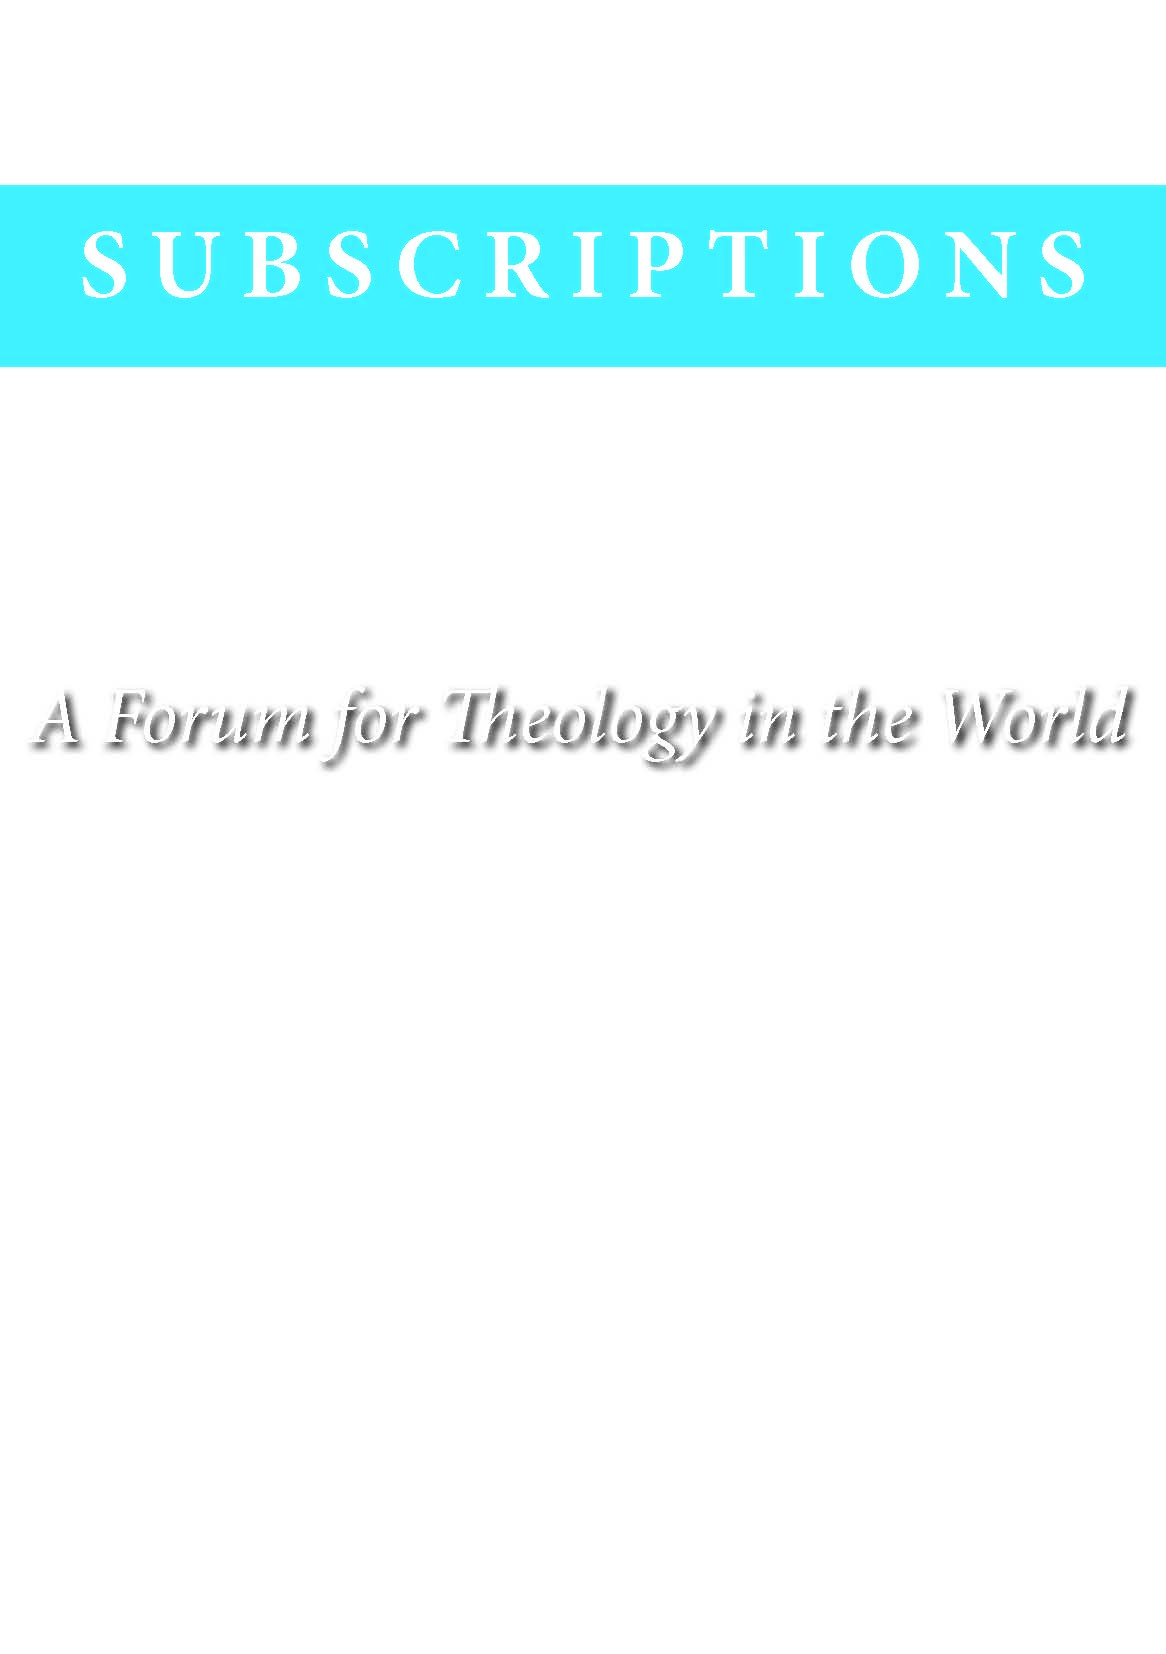 A Forum for Theology in the World Subscriptions (INSTITUTIONS)